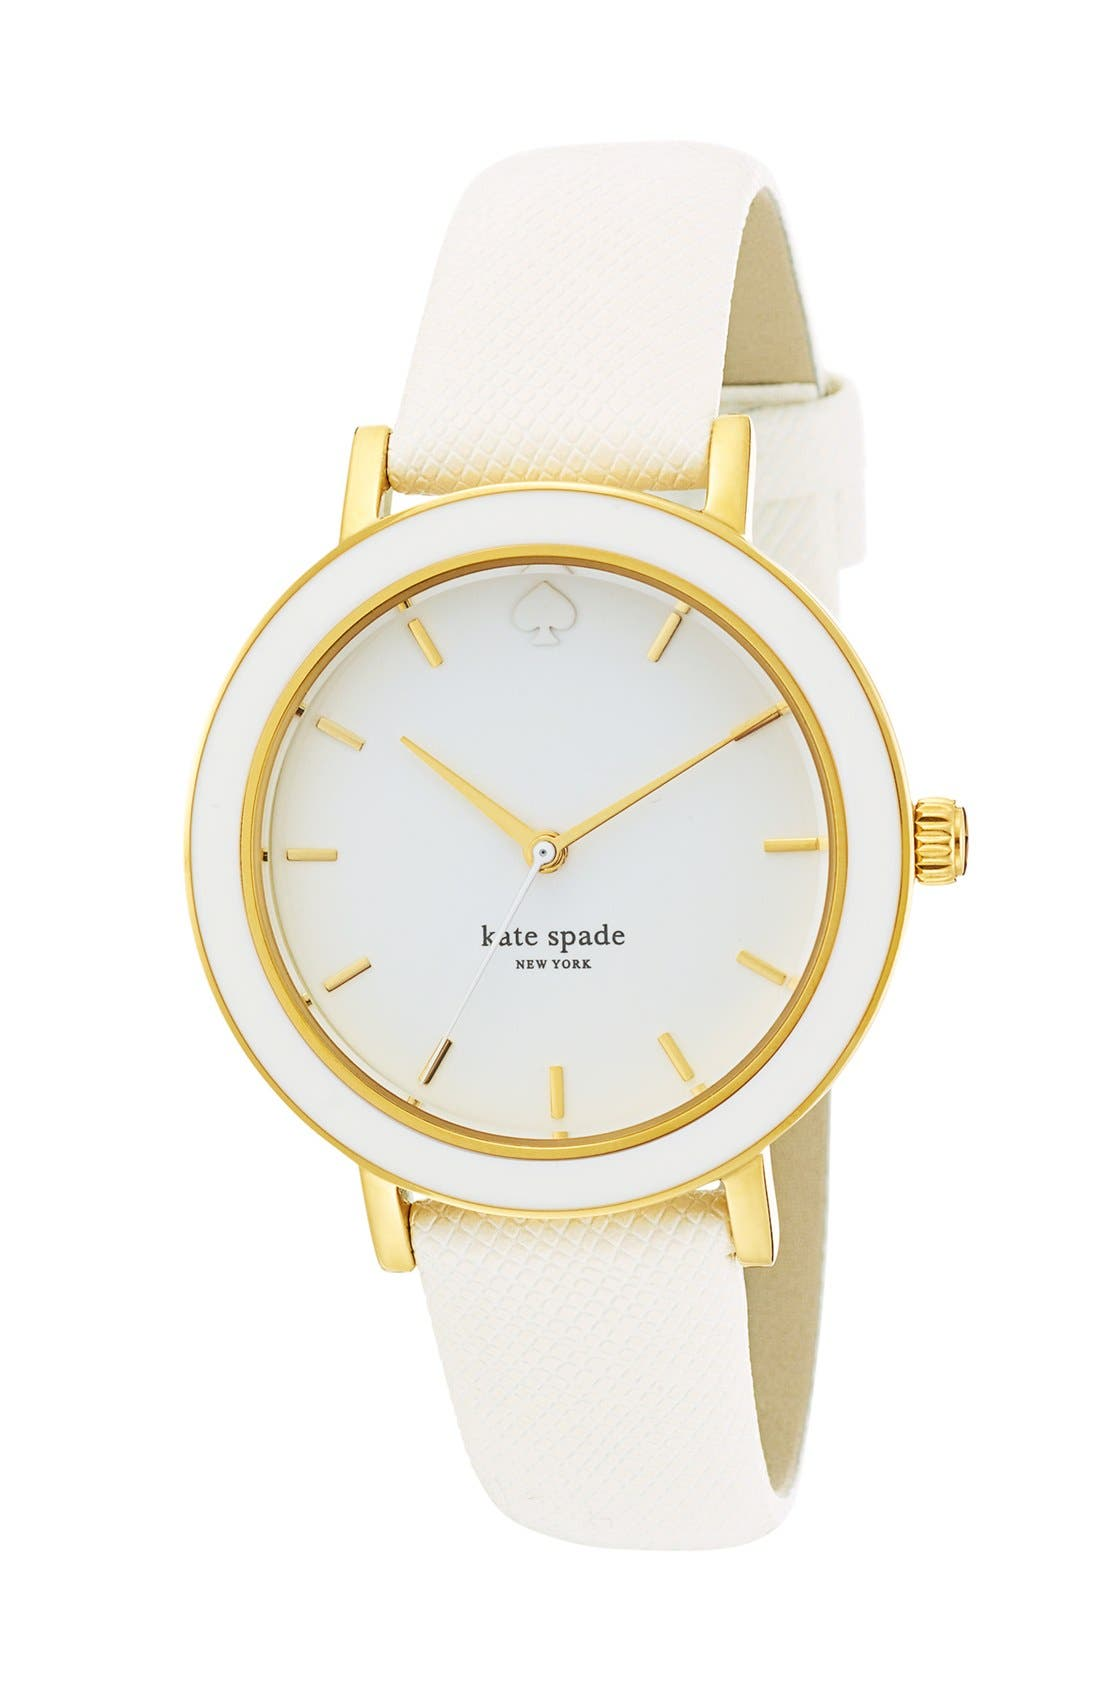 KATE SPADE NEW YORK,                             'metro' enamel bezel leather strap watch, 38mm,                             Alternate thumbnail 2, color,                             100